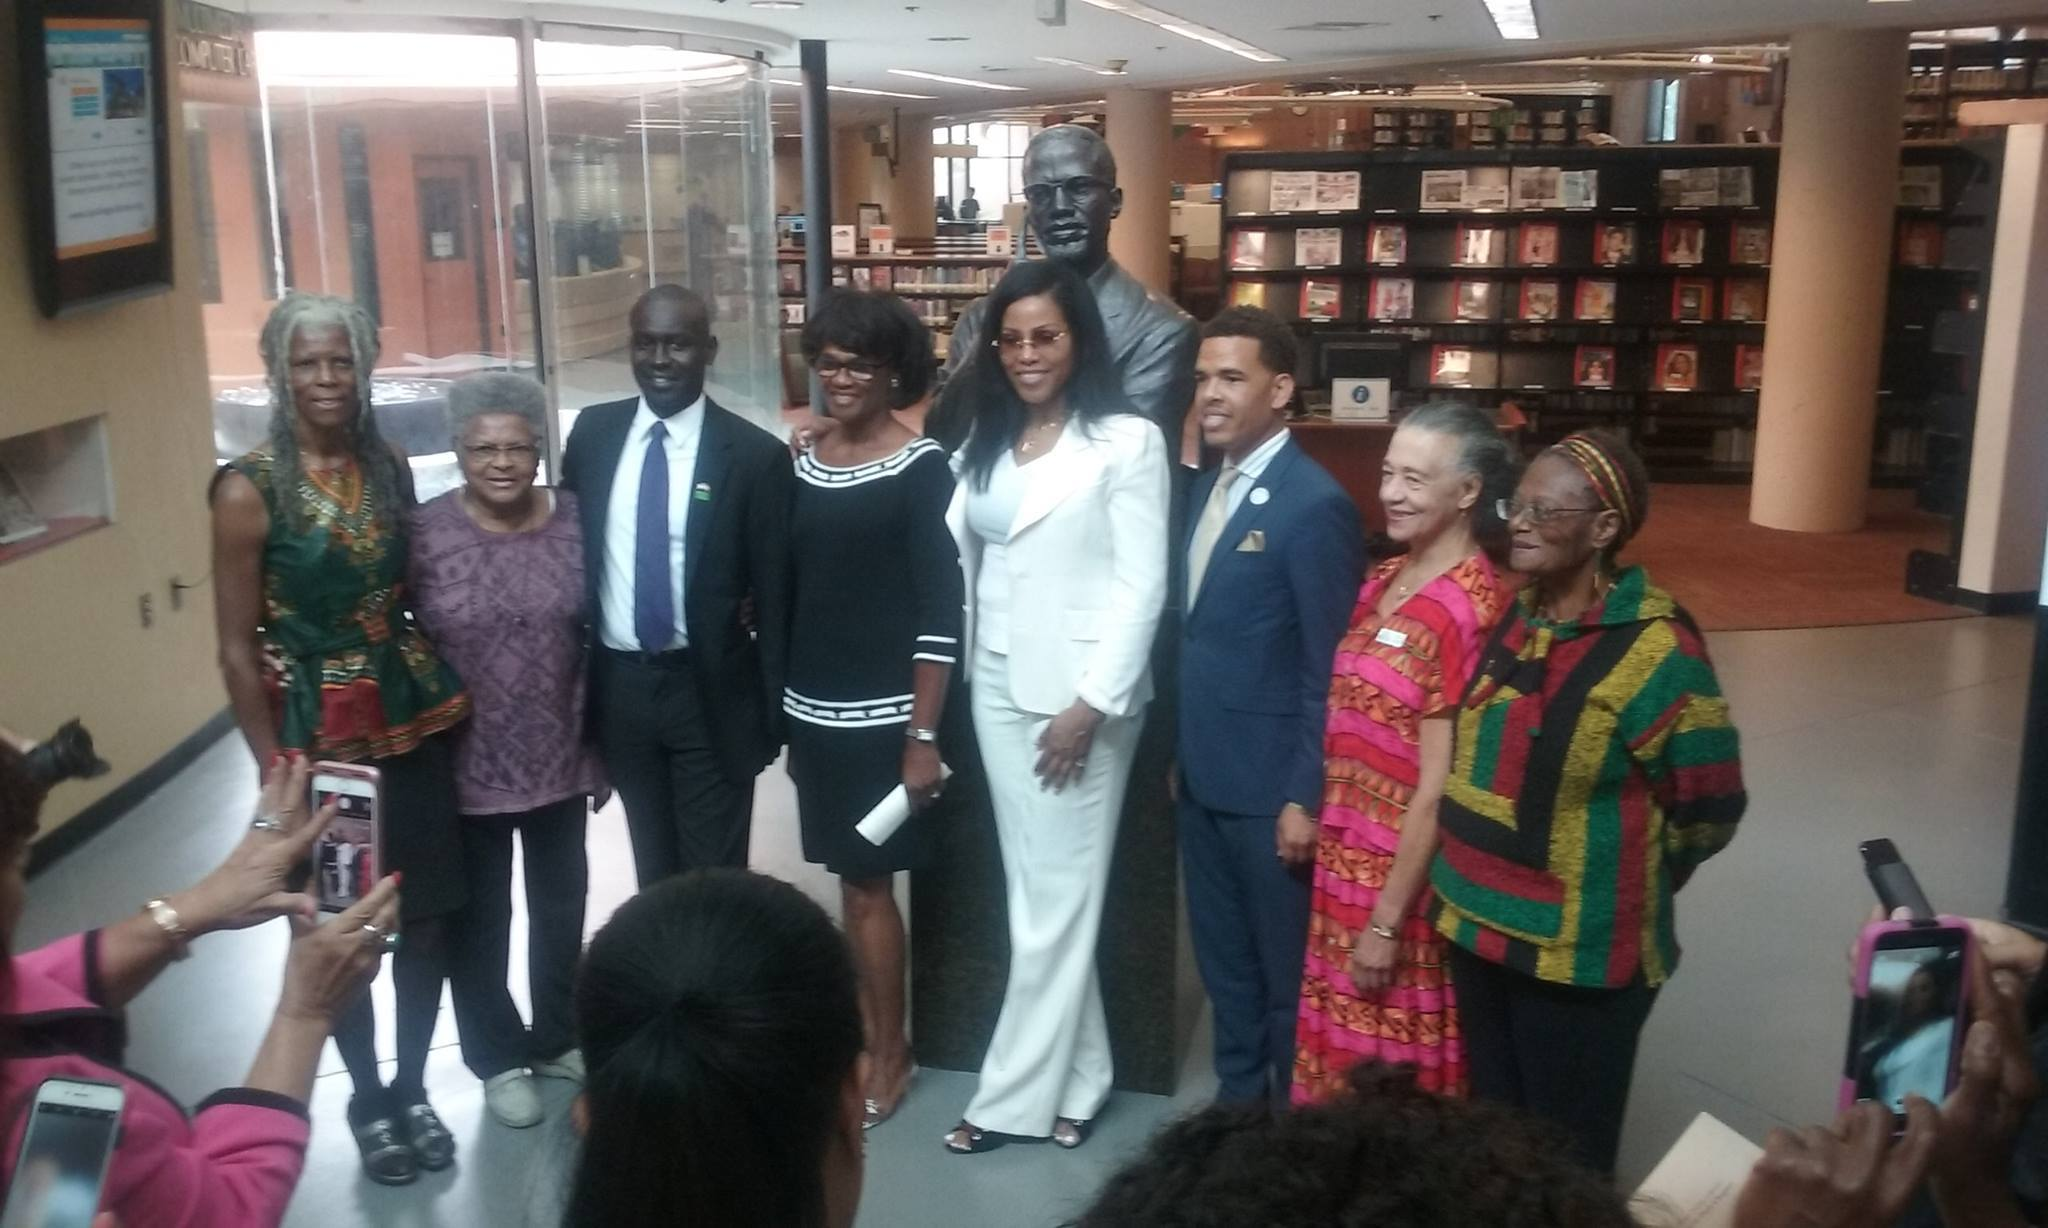 Malcolm X's daughter makes her 1st visit to the library